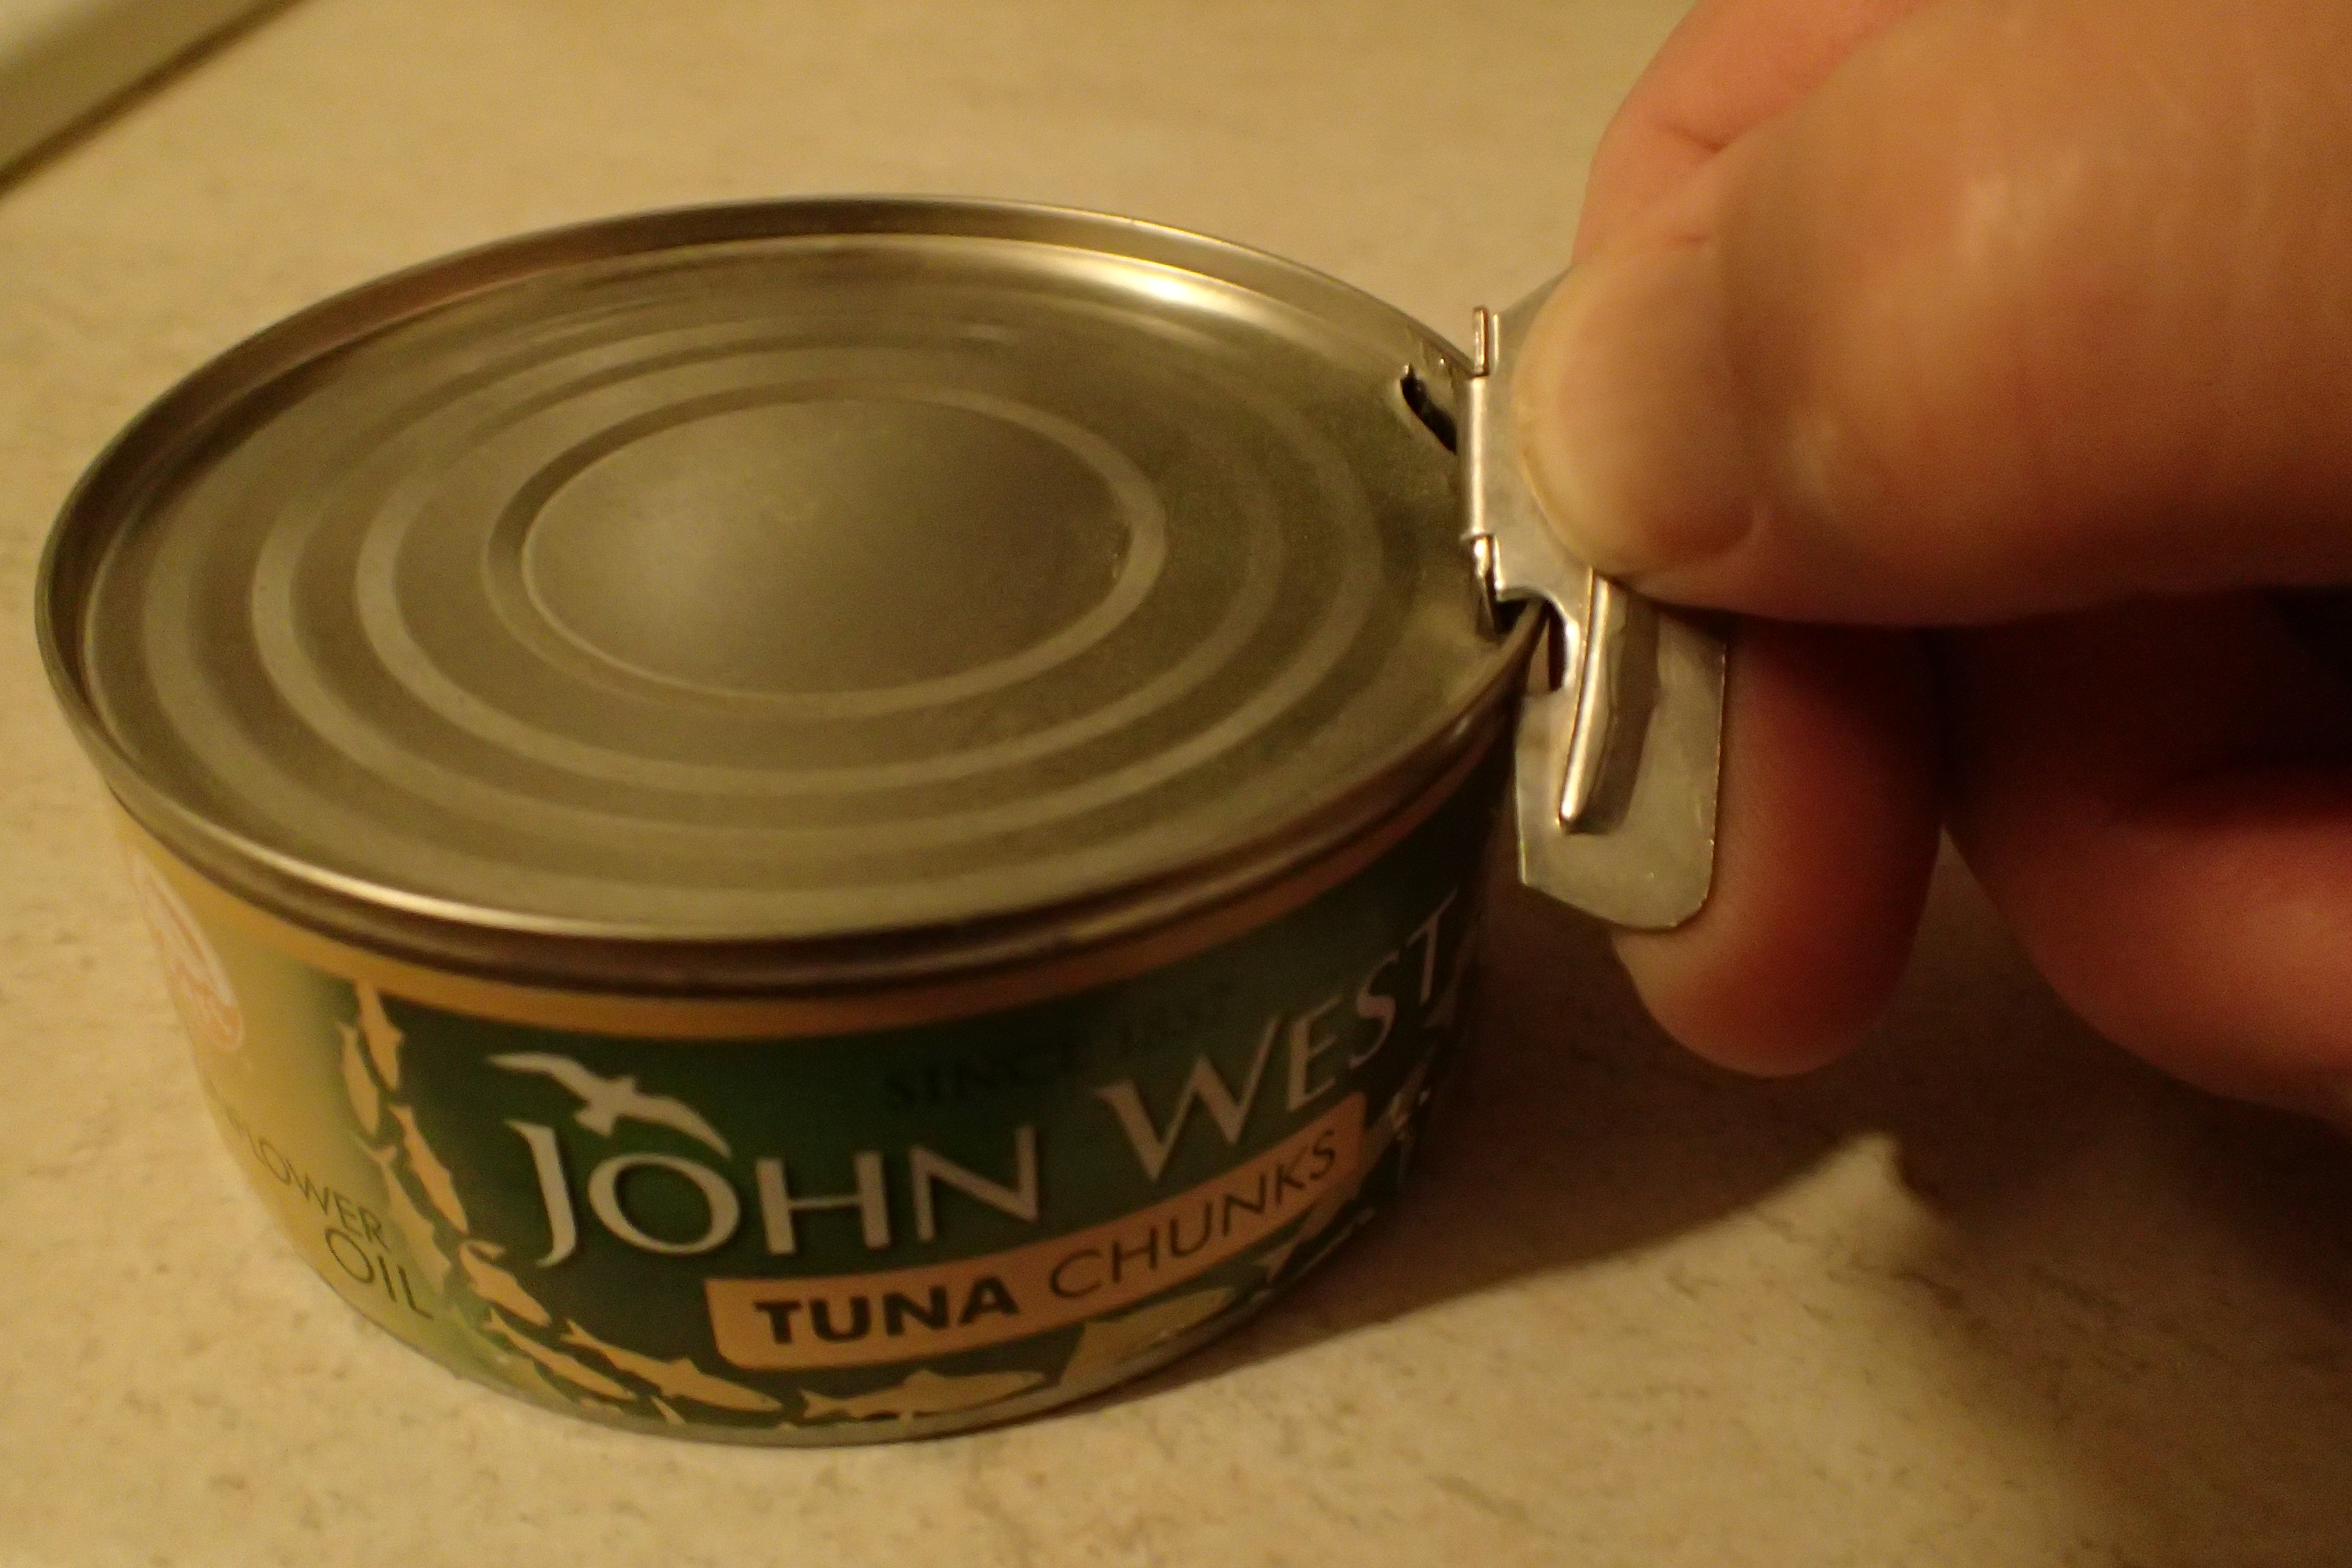 Not every tin of food comes with a ring pull. Without a tiny lightweight opener, gaining access is difficult